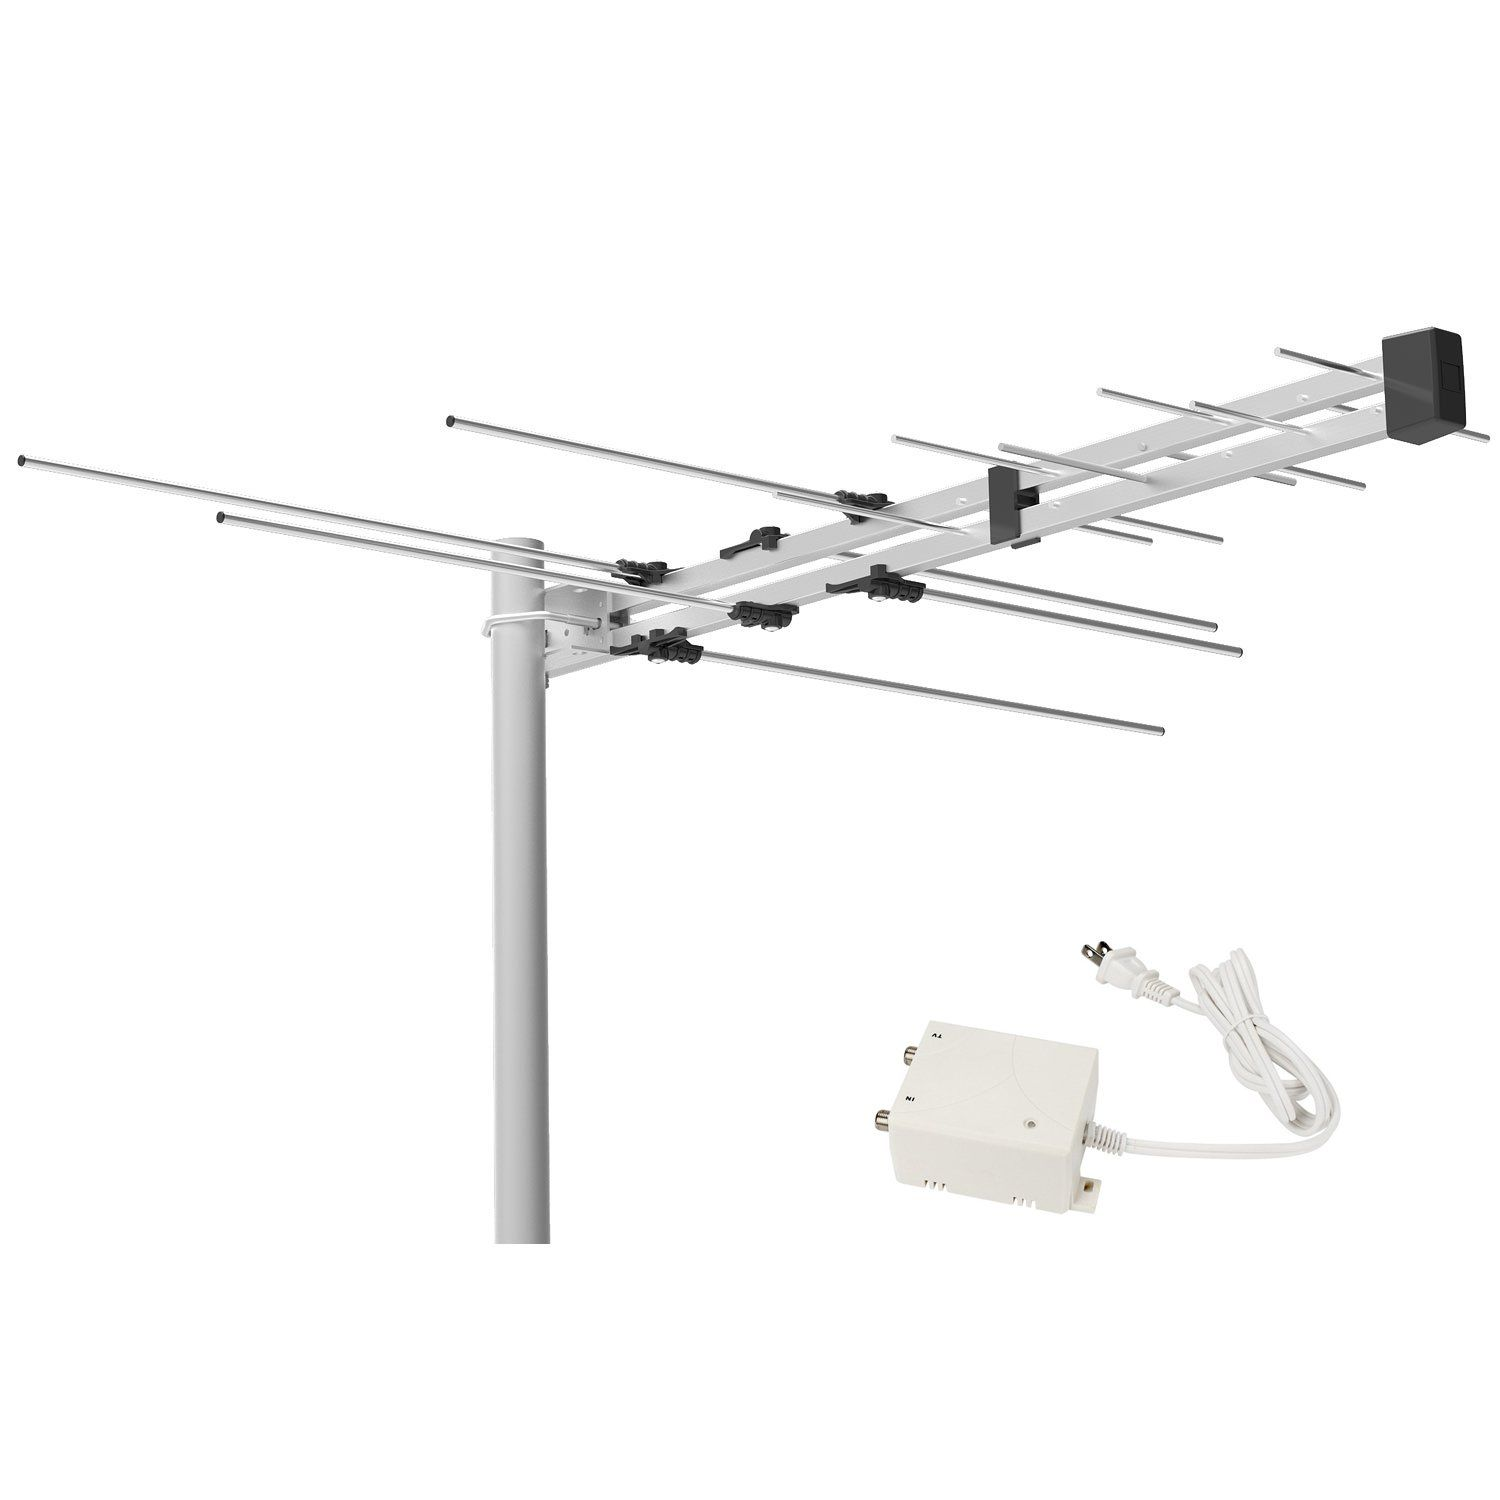 1byone Digital Amplified Outdoor Attic Hdtv Antenna 70 Miles Range With Power Supply Box For Vhf And Uhf Band Hdtv Antenna Digital Antenna Antenna